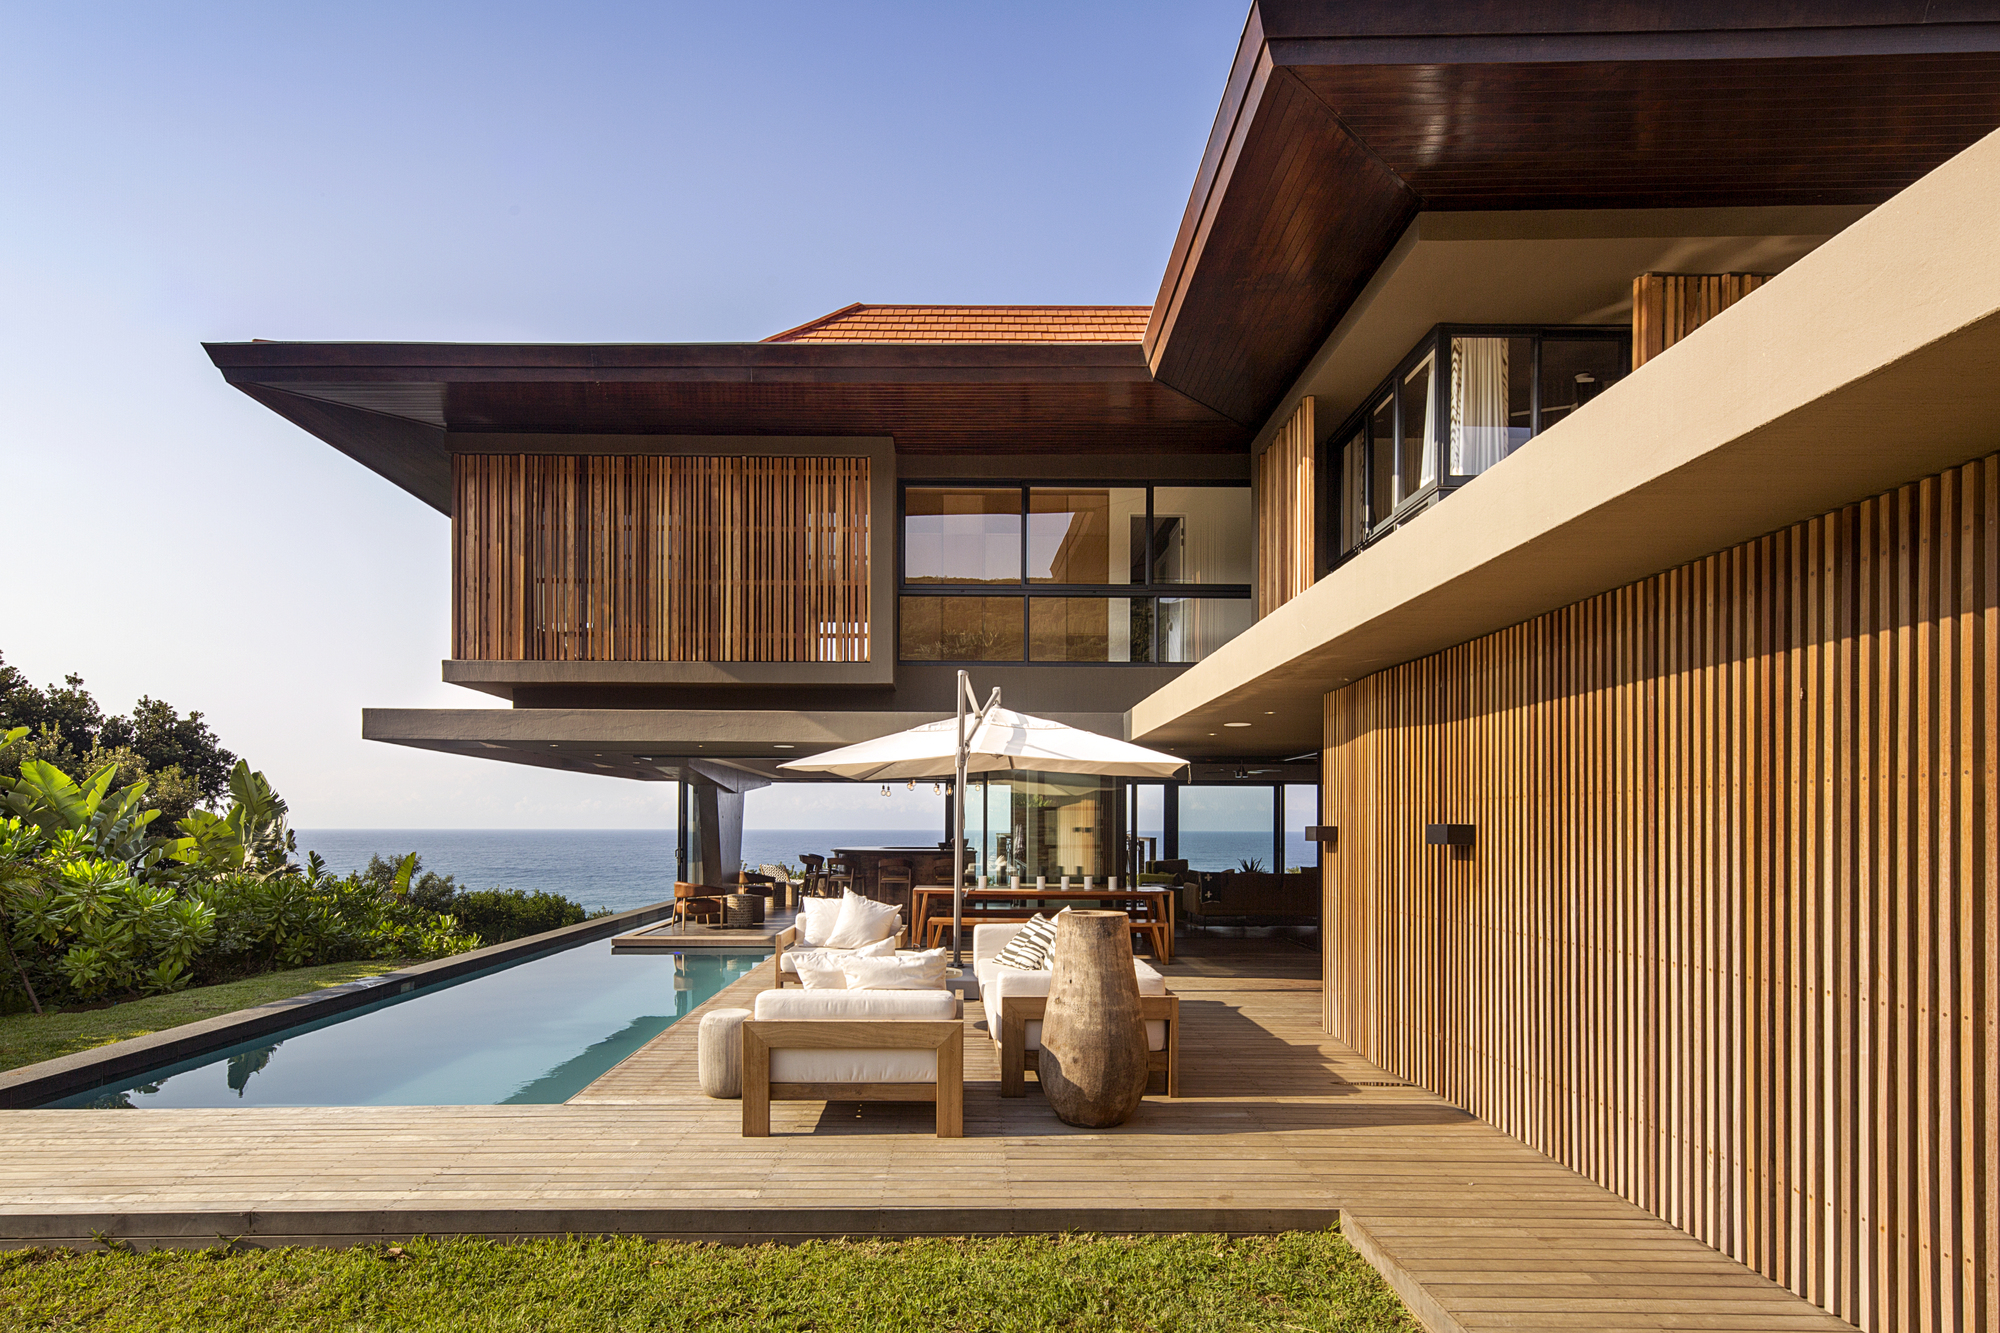 The reserve house metropole architects archdaily for Casa modern